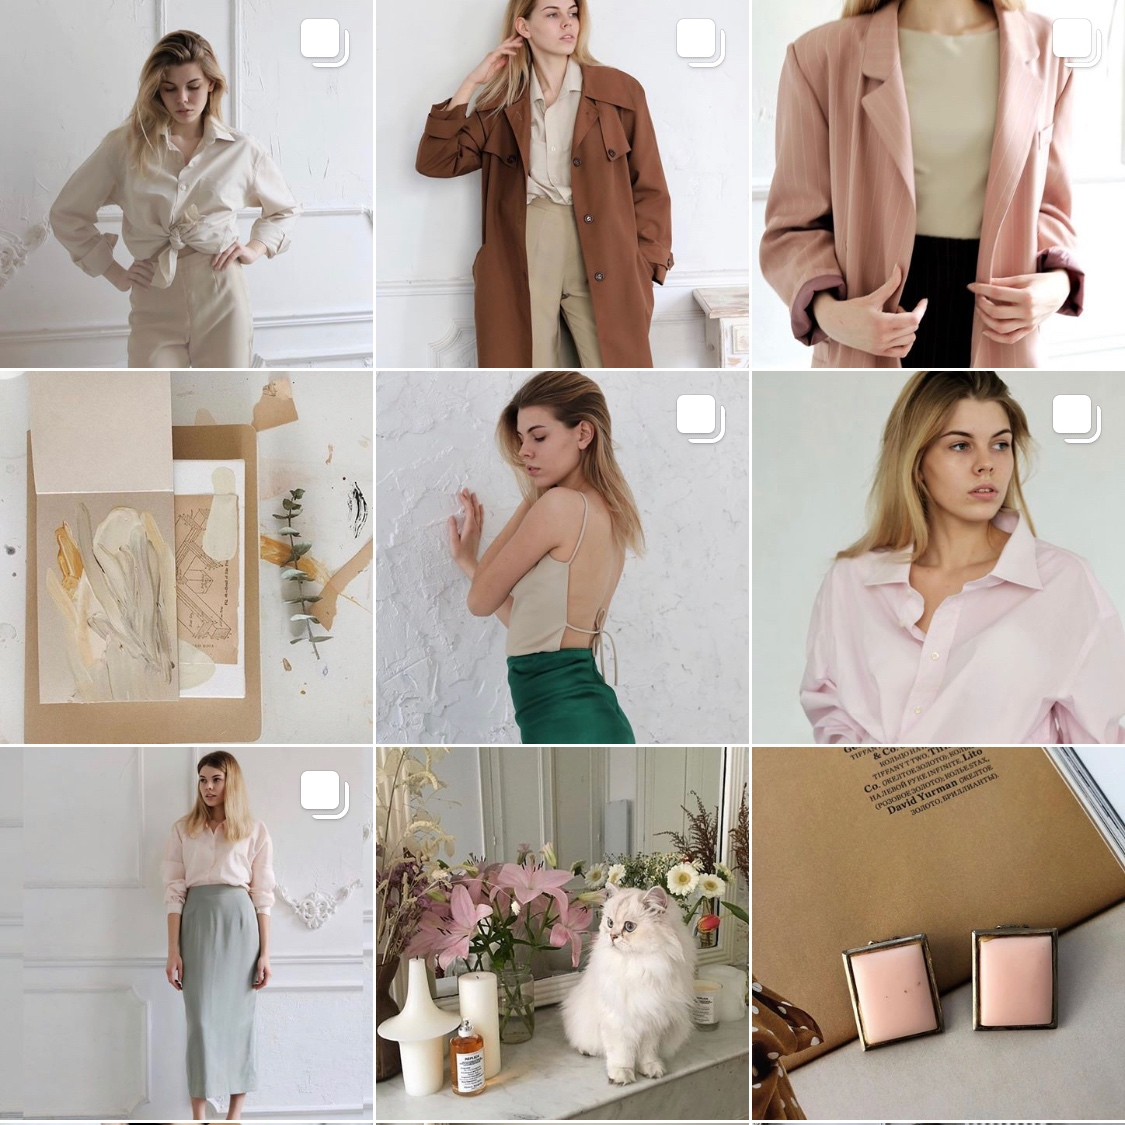 black badlon - Beautiful vintage clothing, beautiful feed and friendly (for vintage) prices. They sell online, you can message them on Instagram to ask about shipping and availability. The cat is not vintage and not for sale, I checked.